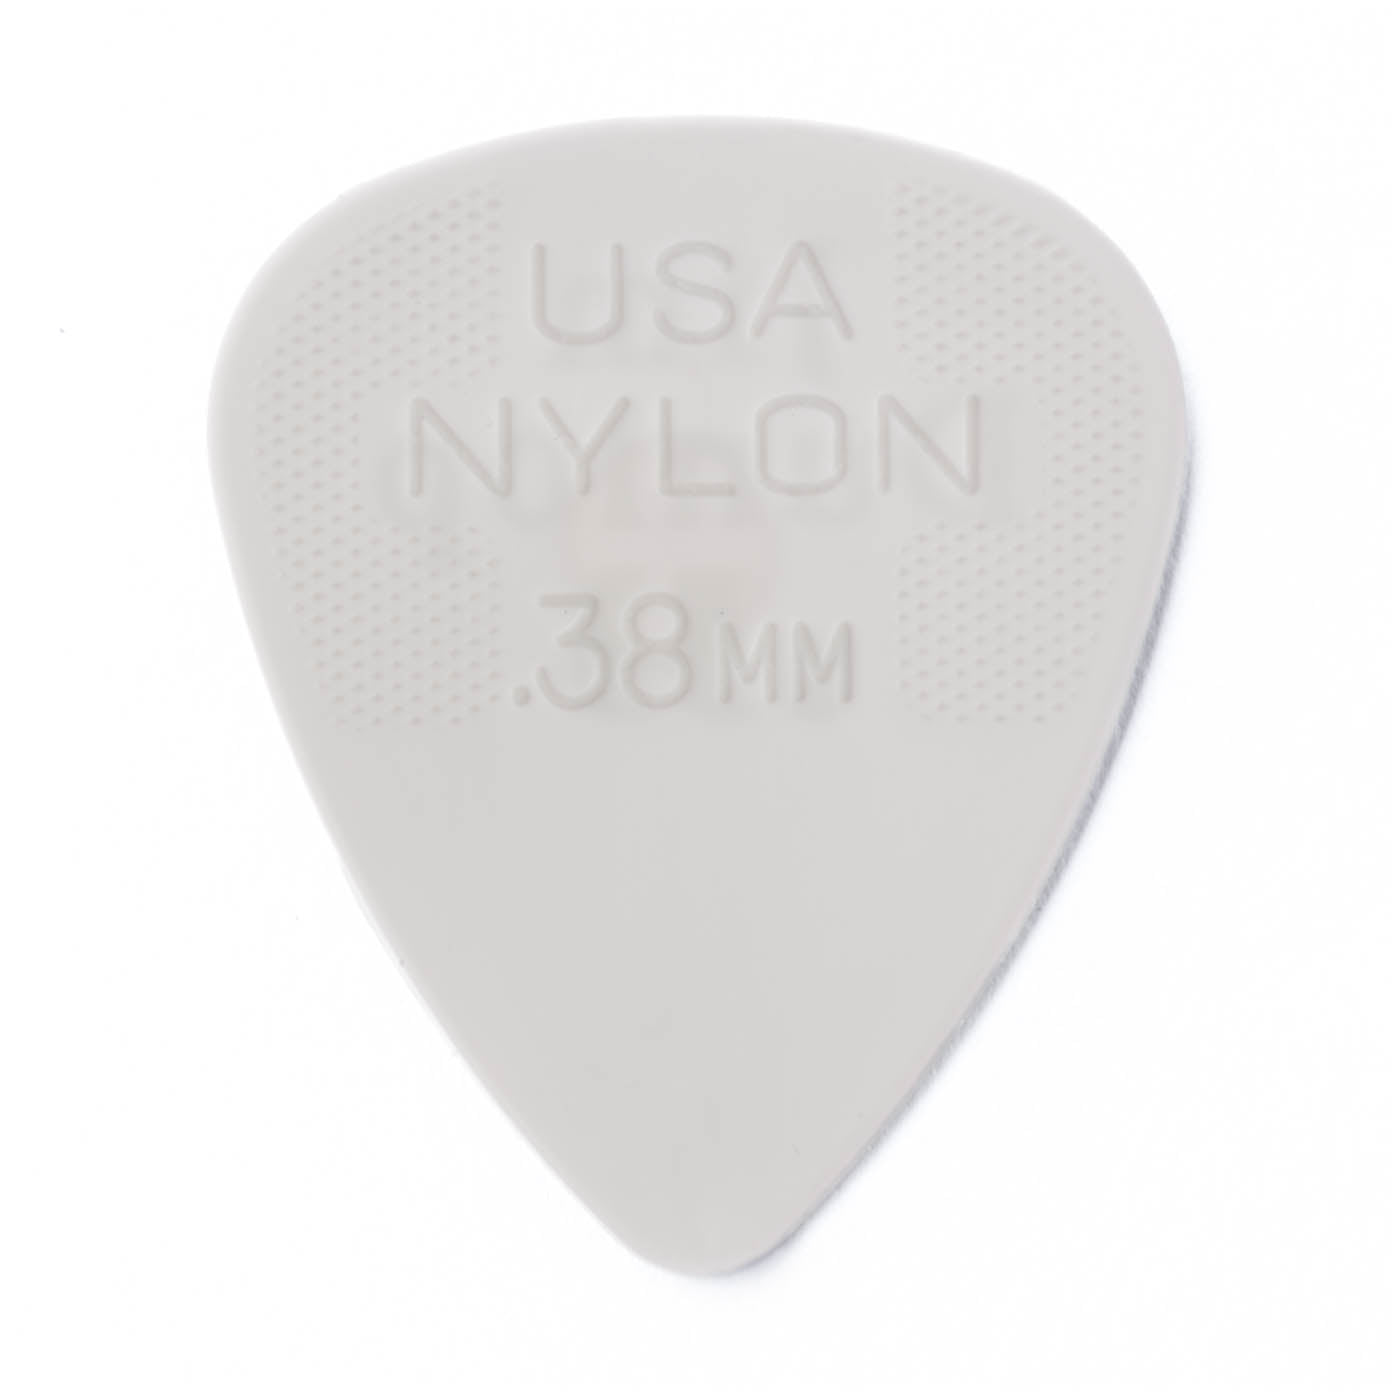 Dunlop 0.38mm Nylon Guitar Pick